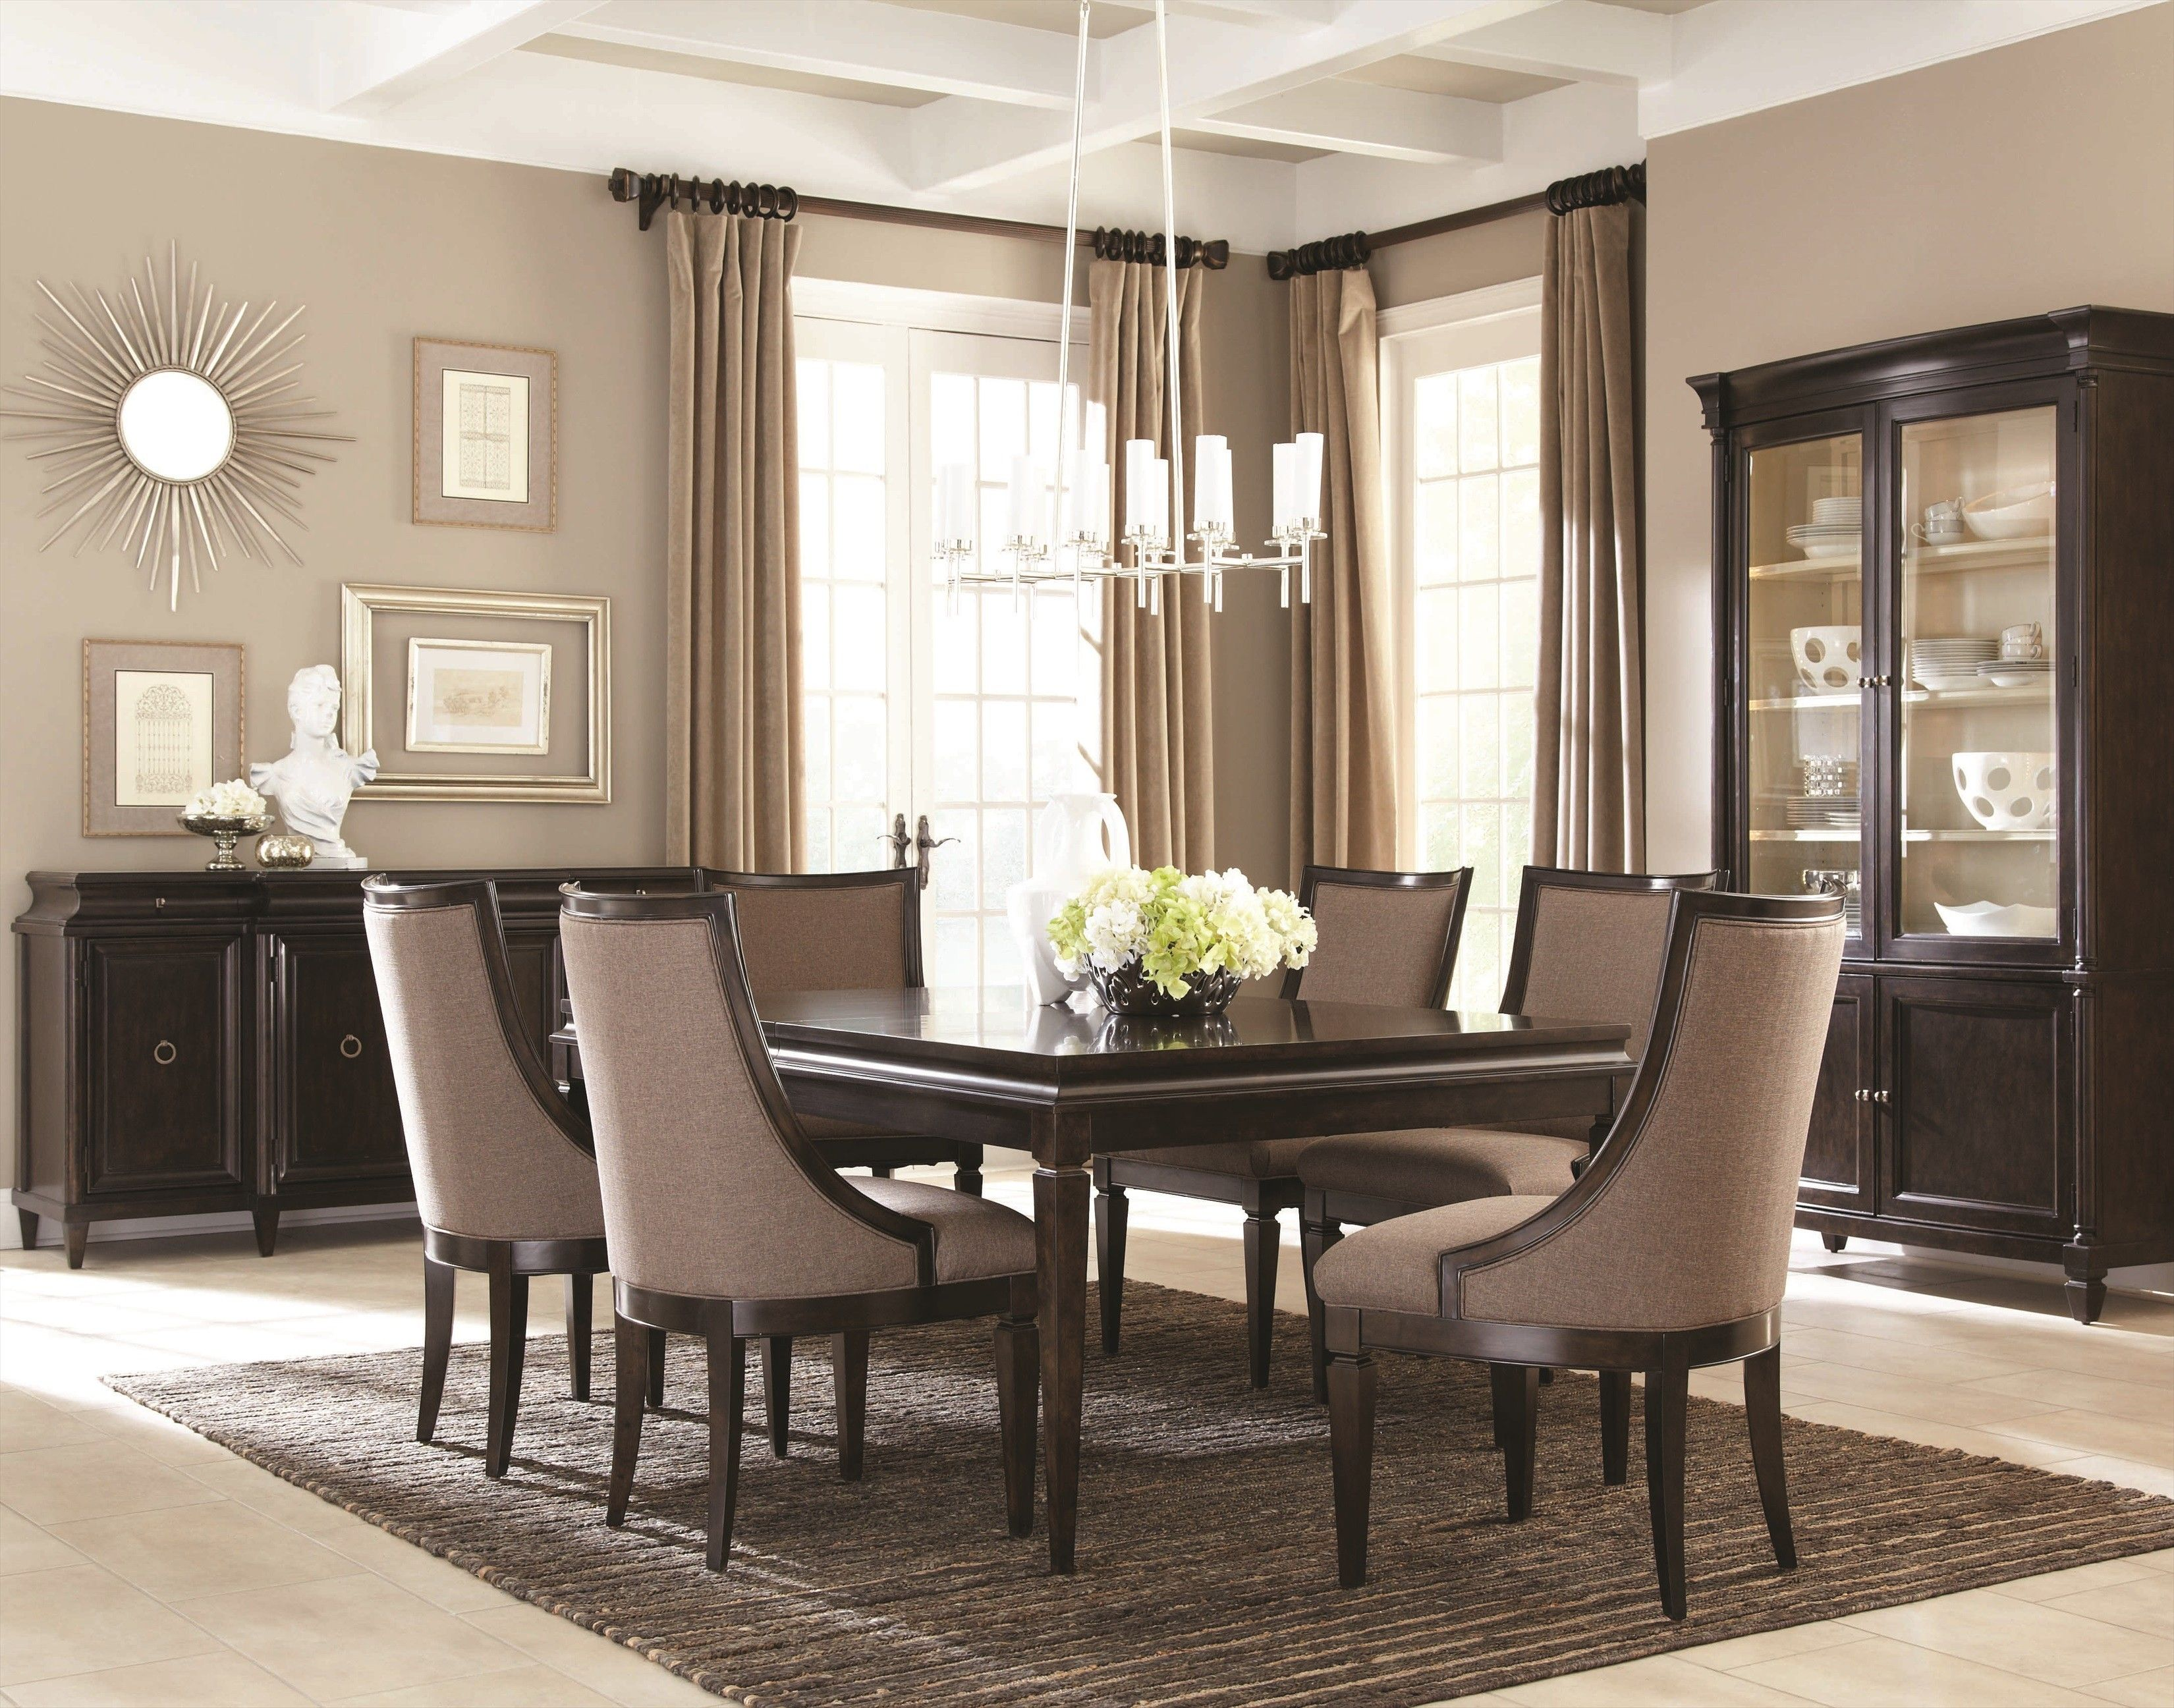 People These Days Usually Have Their Meals In Other Areas Of Their Endearing Formal Contemporary Dining Room Sets Inspiration Design